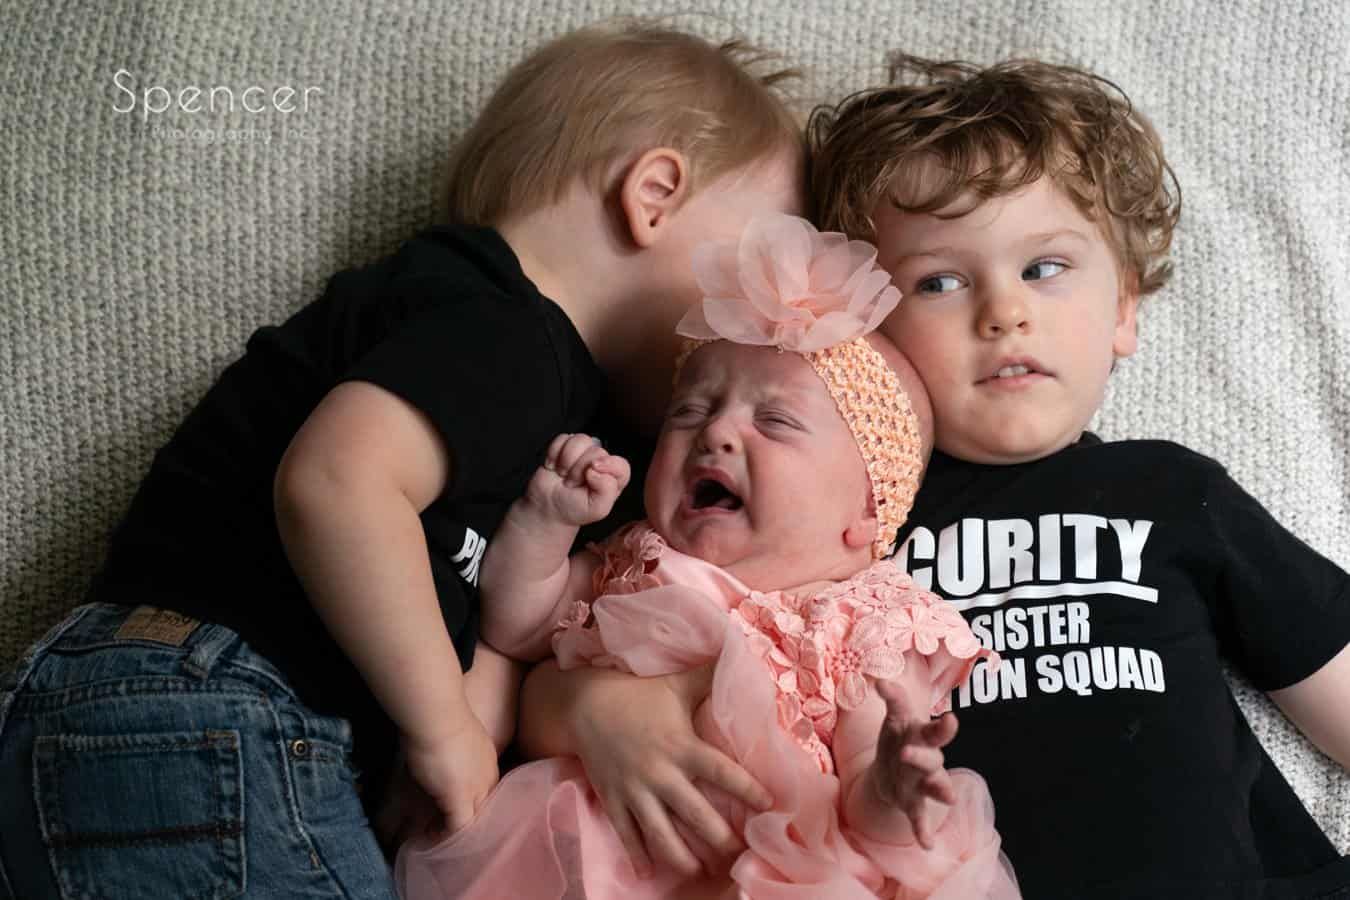 children in family picture with crying baby